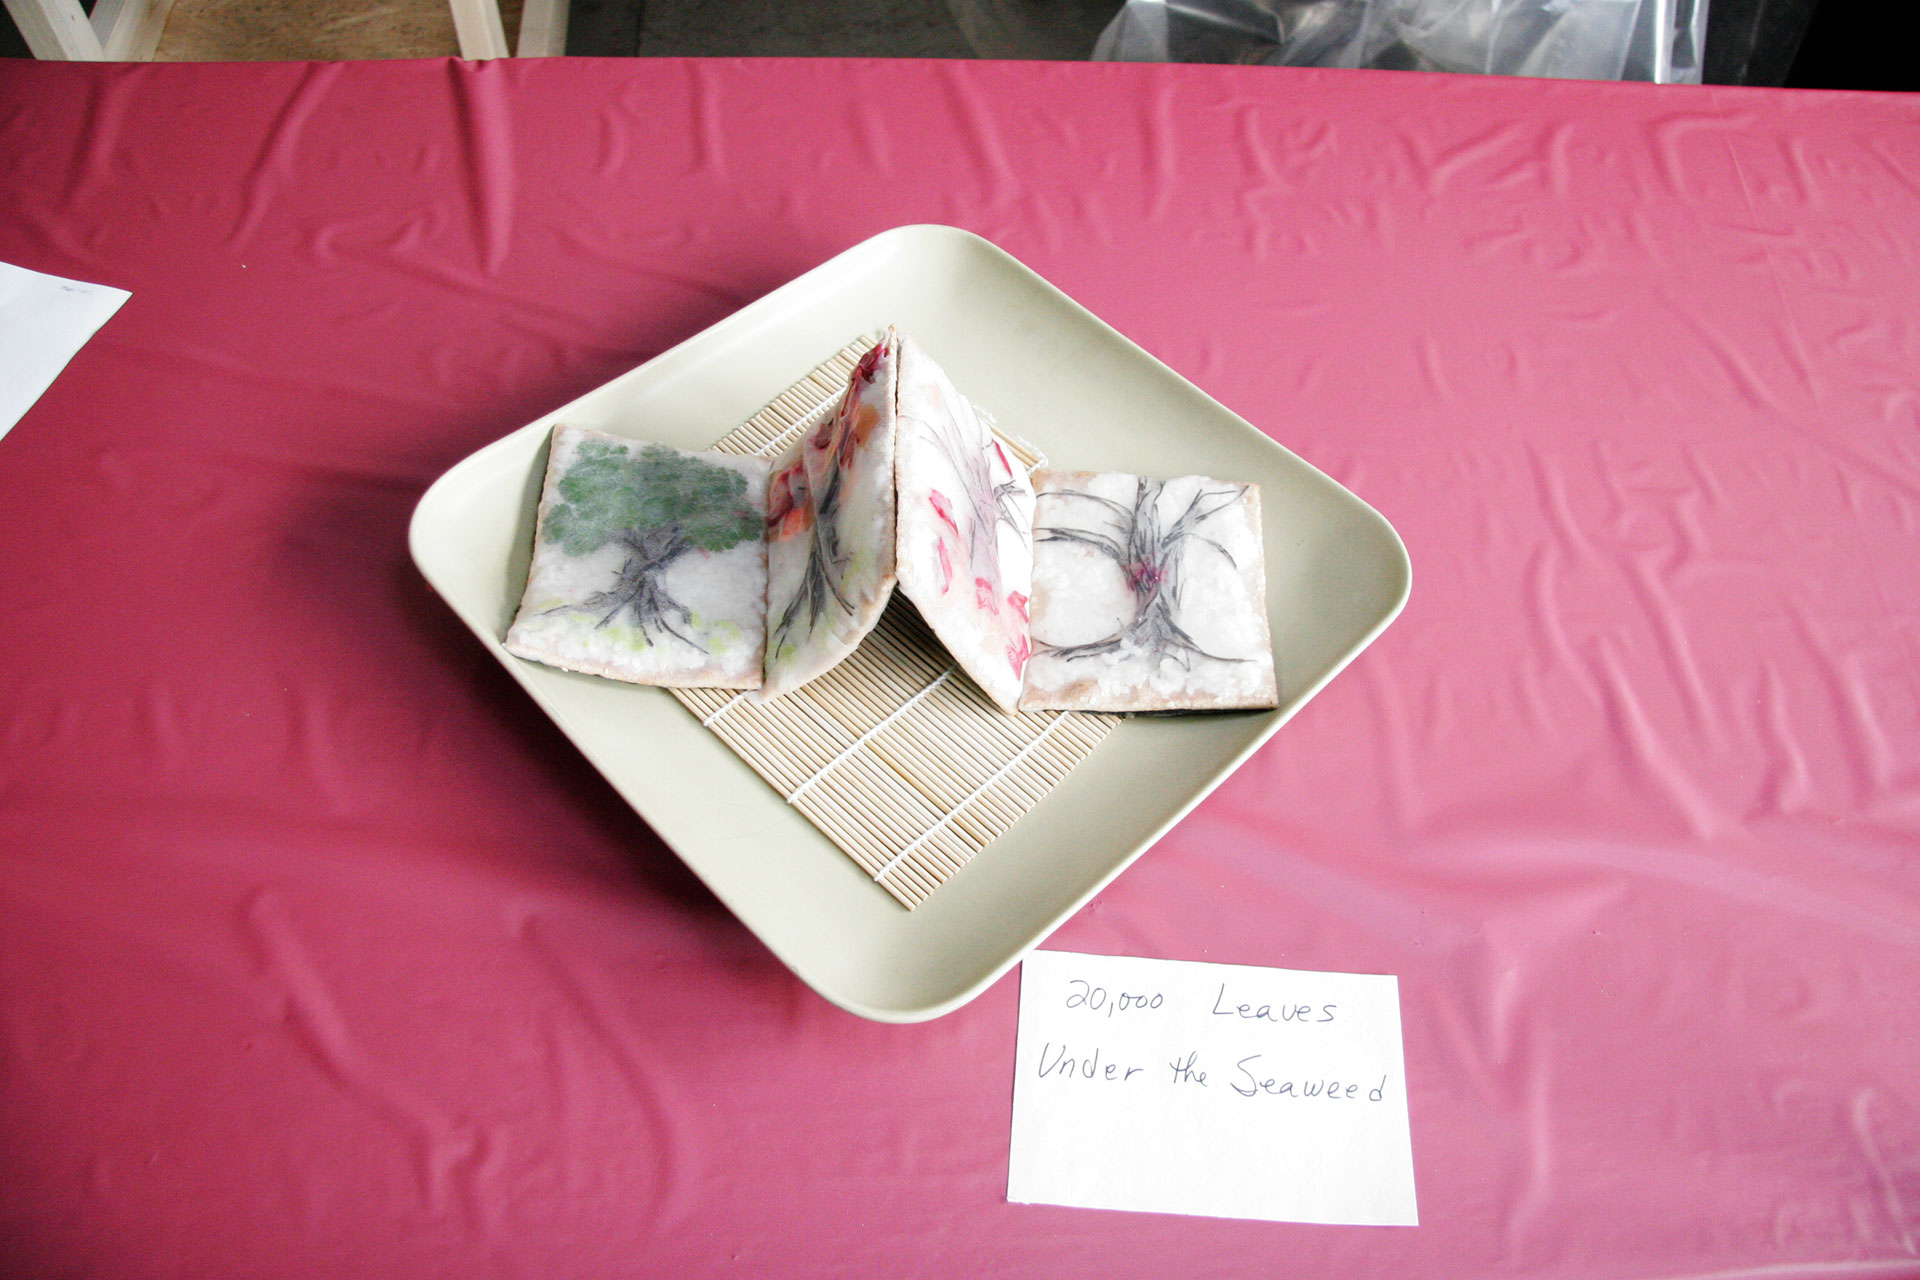 """20,000 Leaves Under the Seaweed"" by Chris Dilley and Lucy Bland; 2008 Edible Book Festival entry"